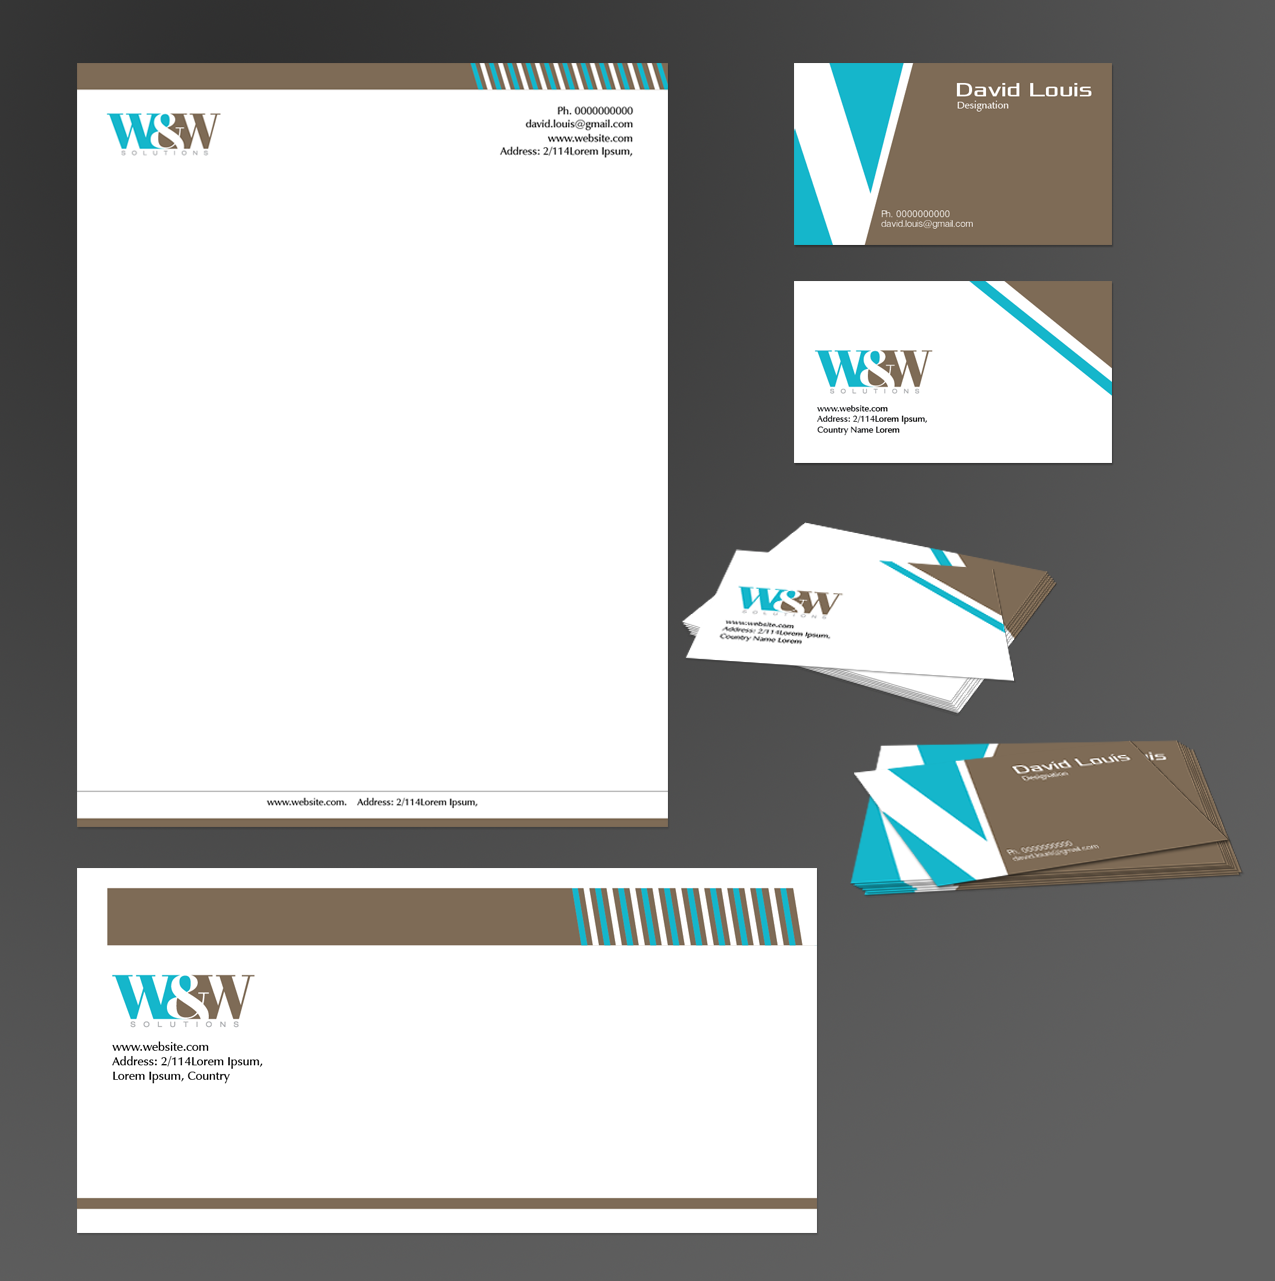 Letterhead Envelopes: Business Stationery Design For Essential Elements By